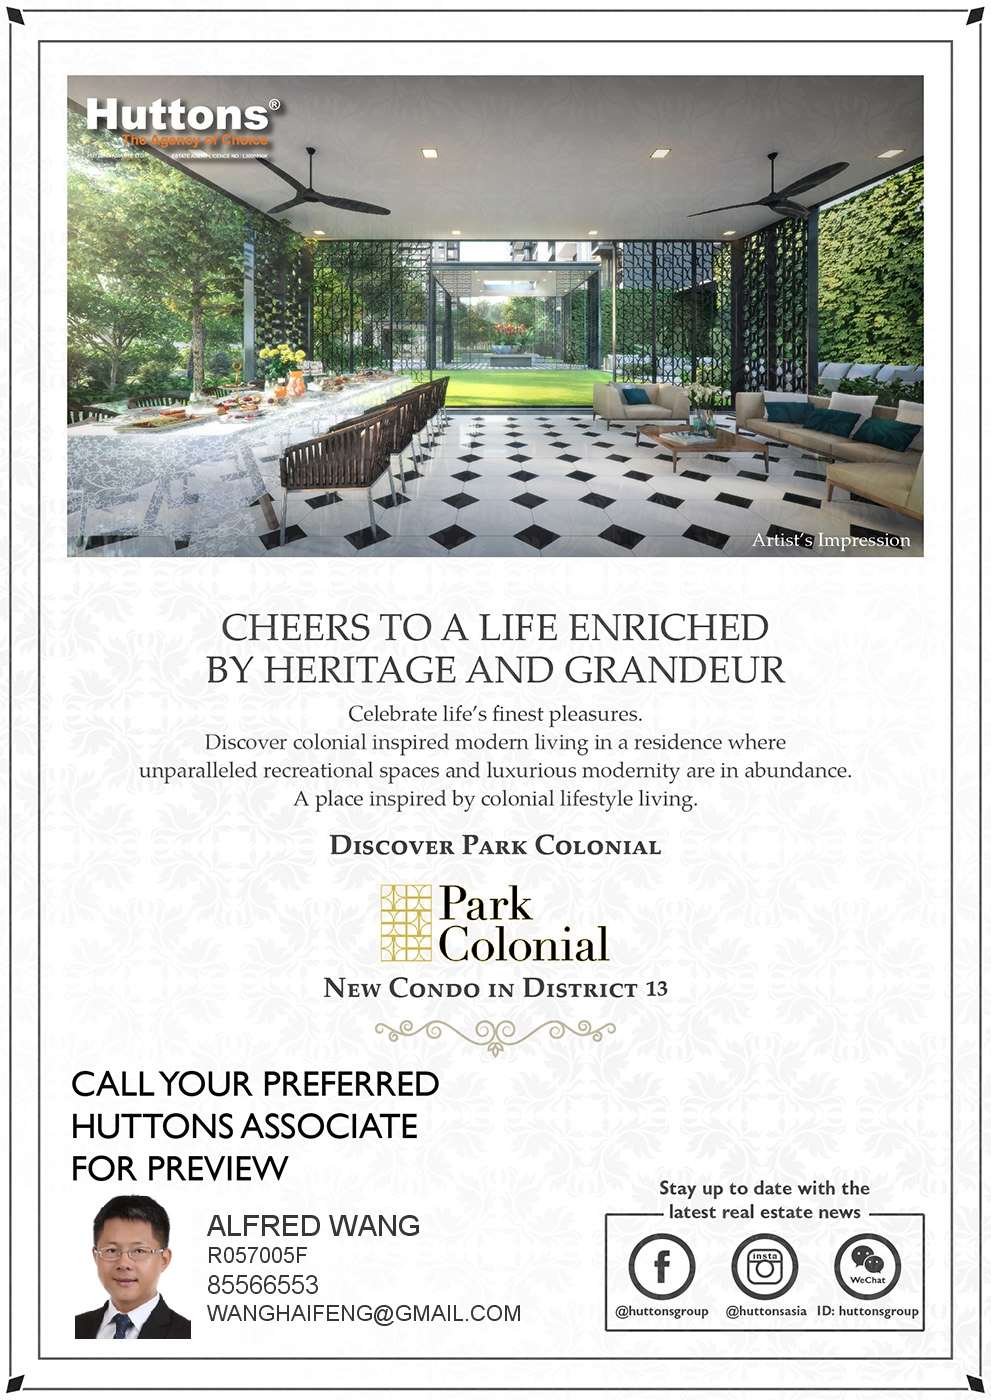 EDM-Park%20Colonial%20(Cheers%20To%20Life%20Enriched)